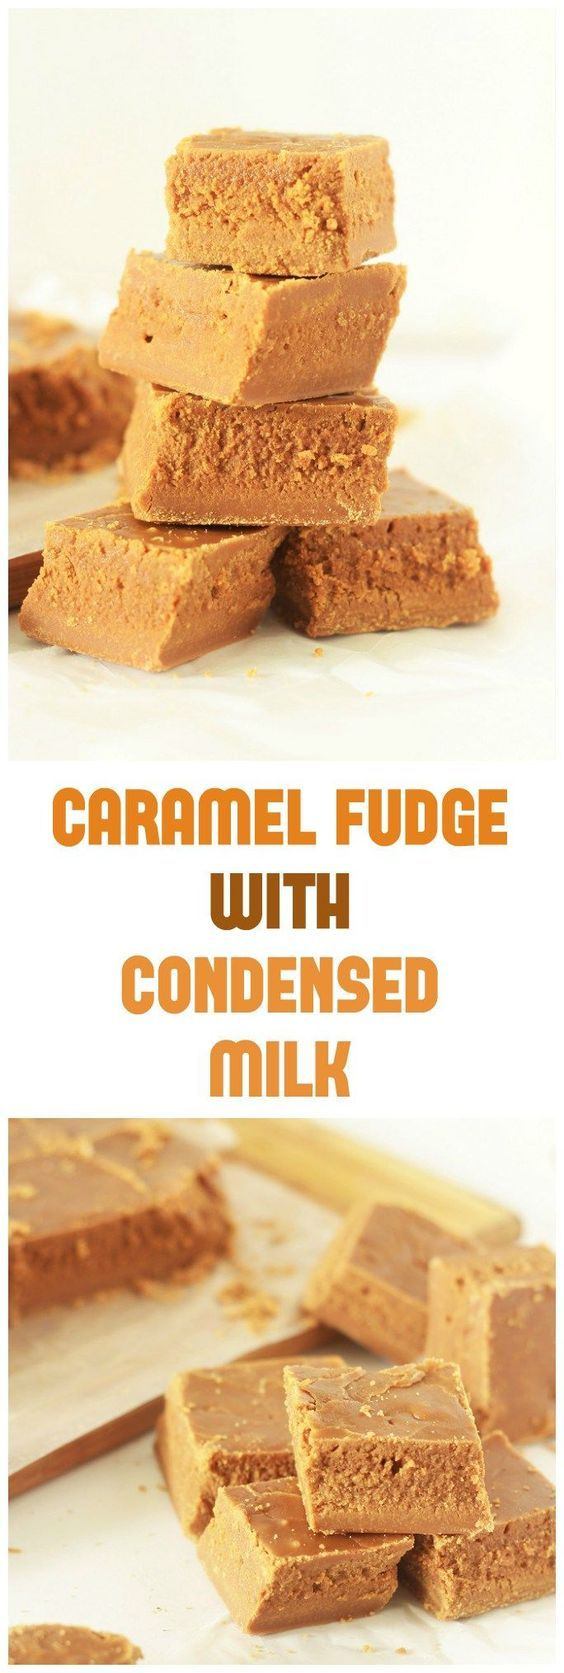 Easy Caramel Fudge With Condensed Milk Without Using Thermometer